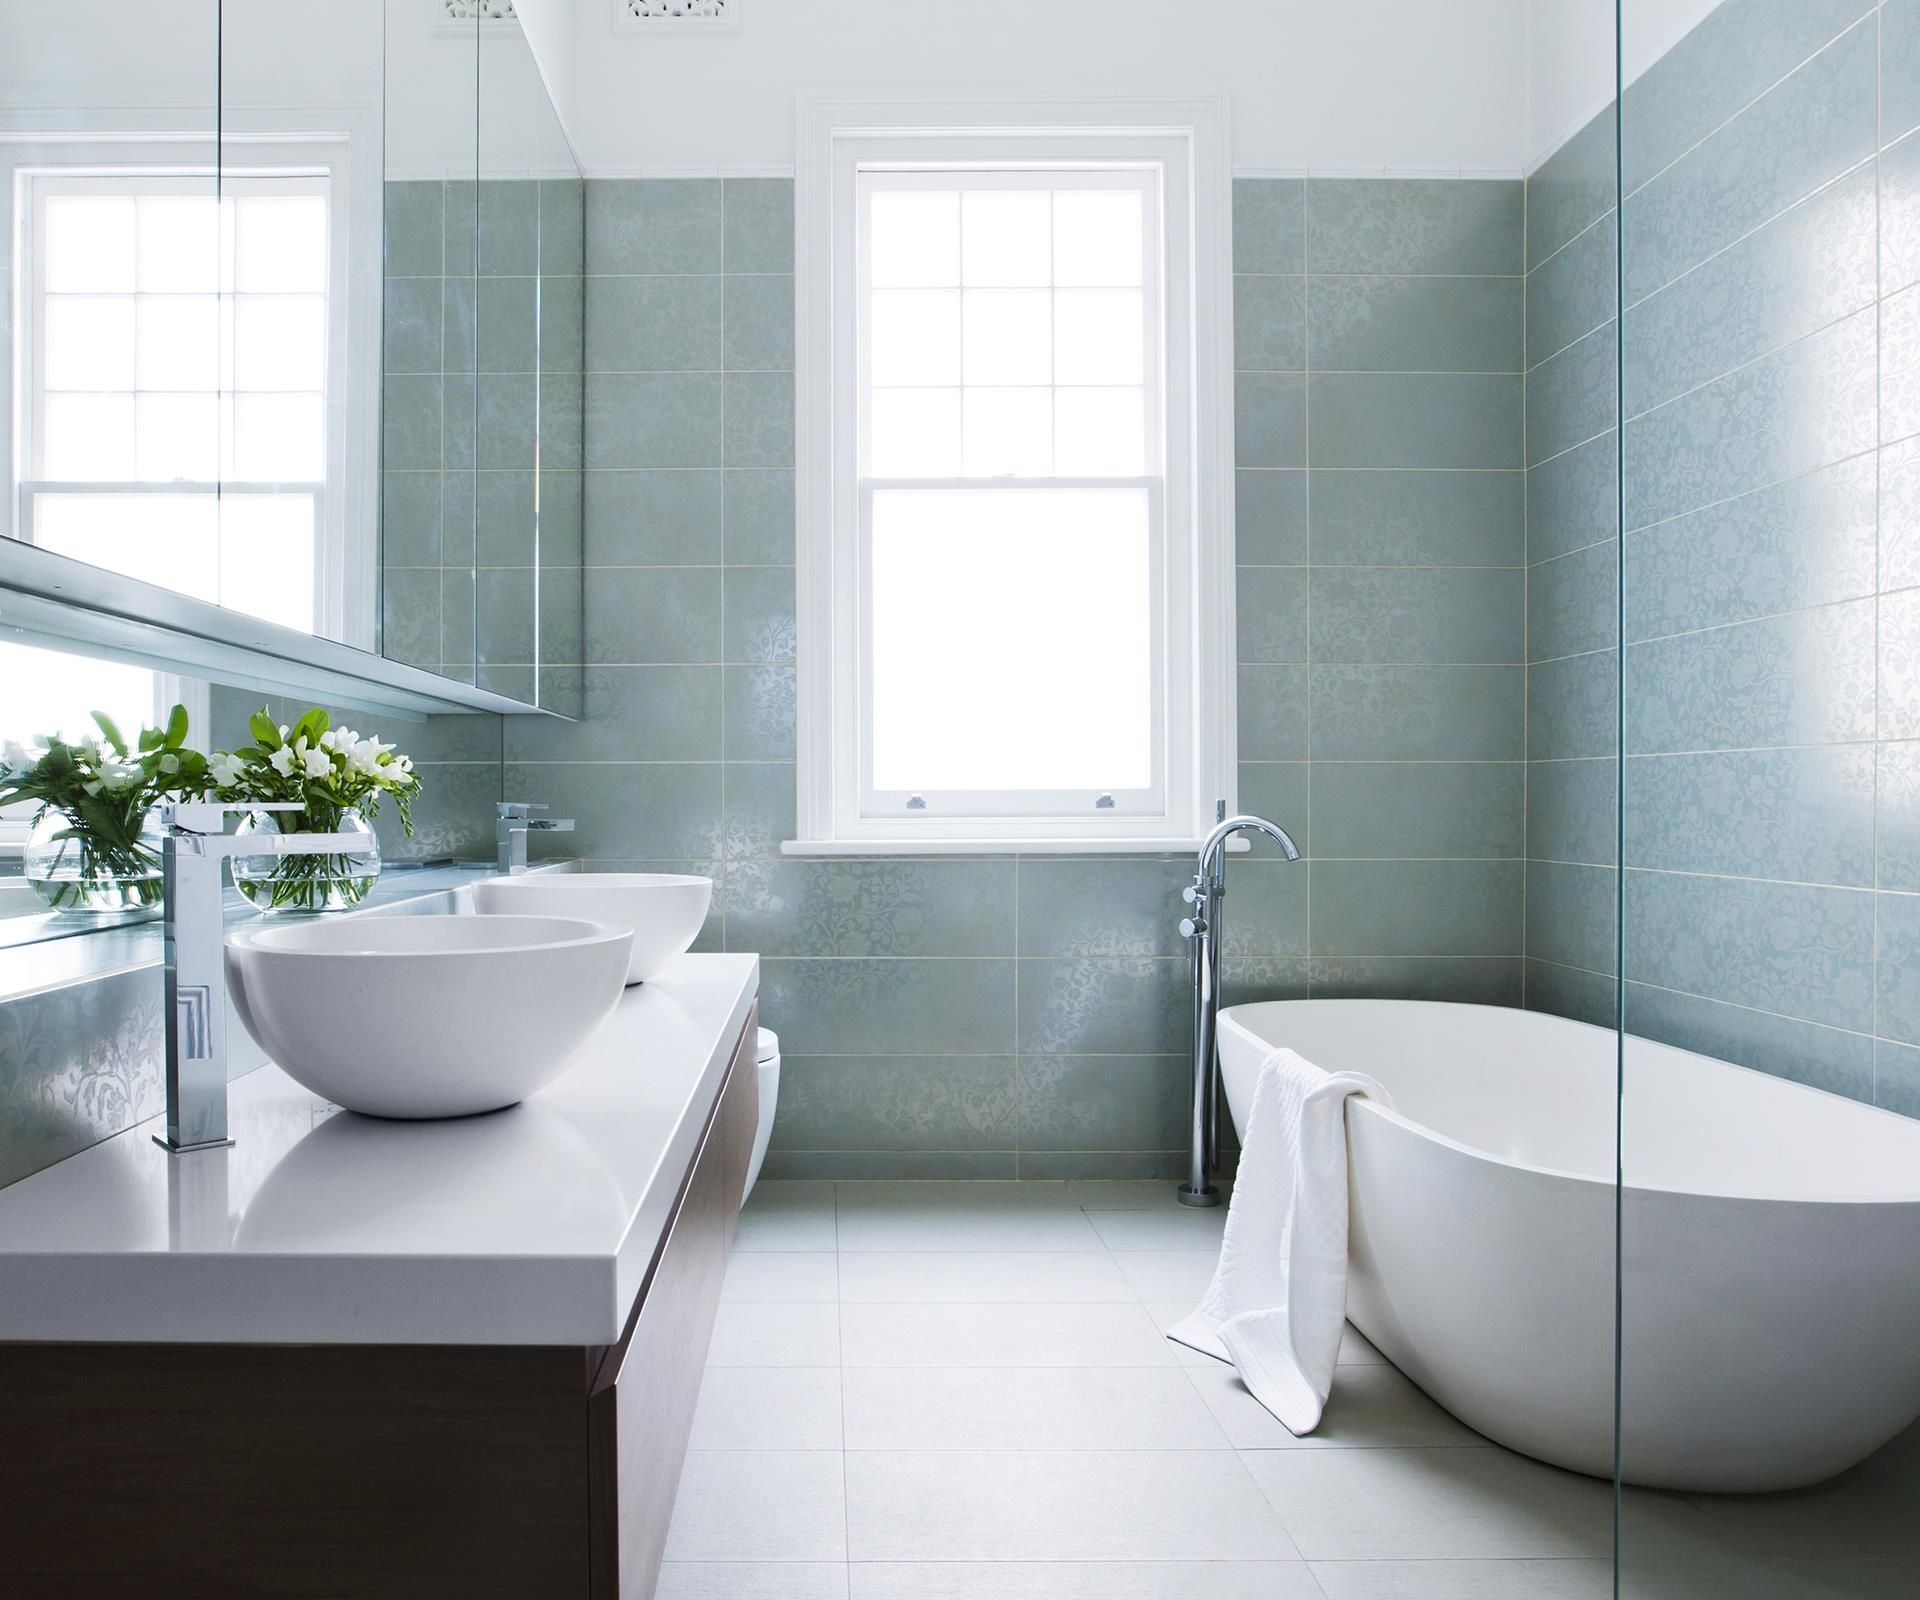 bathroom in a day. A Pale Blue Bathroom Renovation In Heritage Home Combines Classic Style With Modern-day Day E